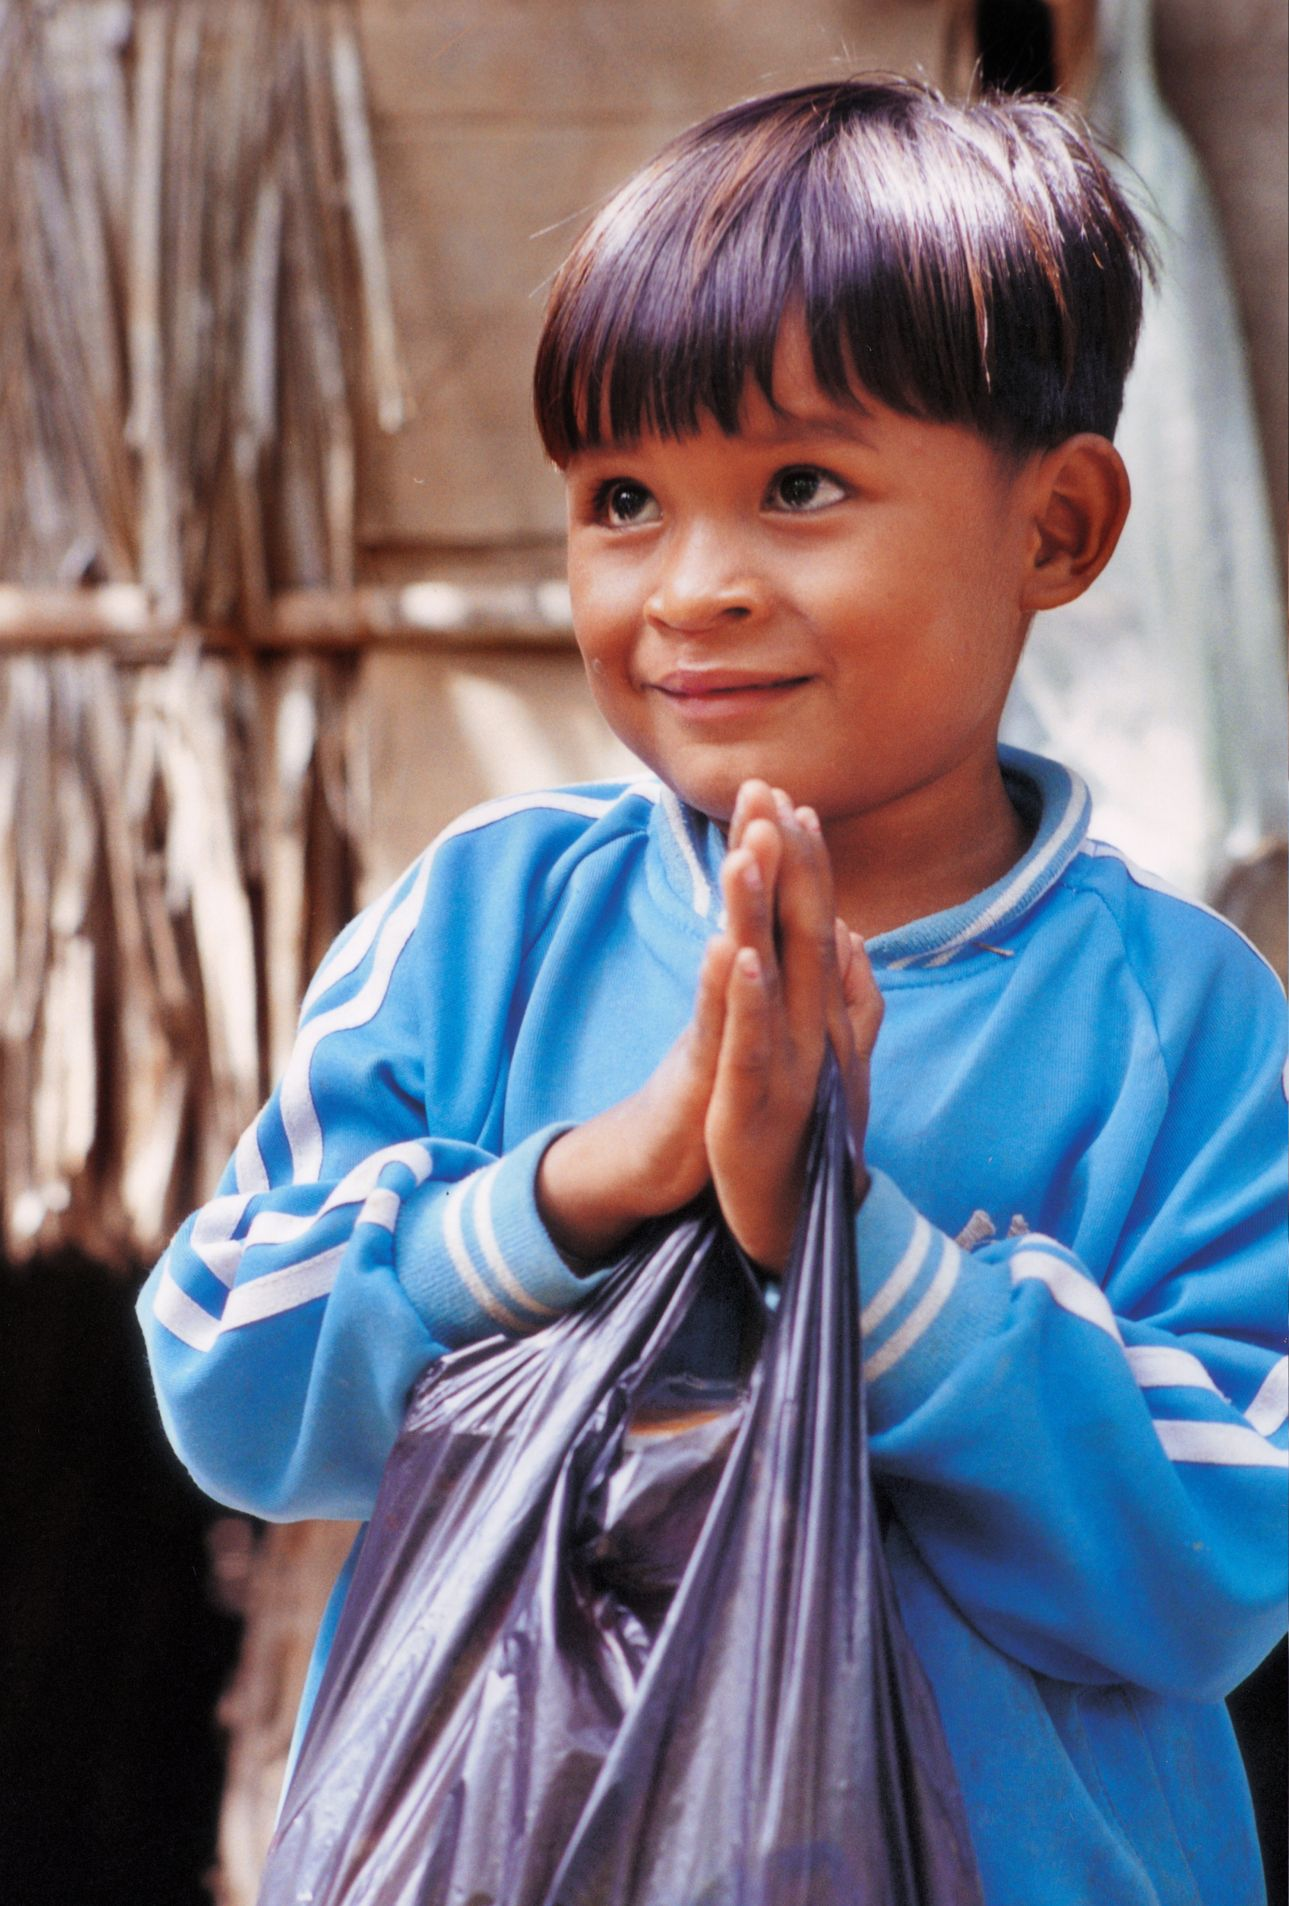 Affordable Universal Health Coverage ─ Taiwan can help --- Cambodia | Noordhoff Craniofacial Foundation | Leave No One Behind